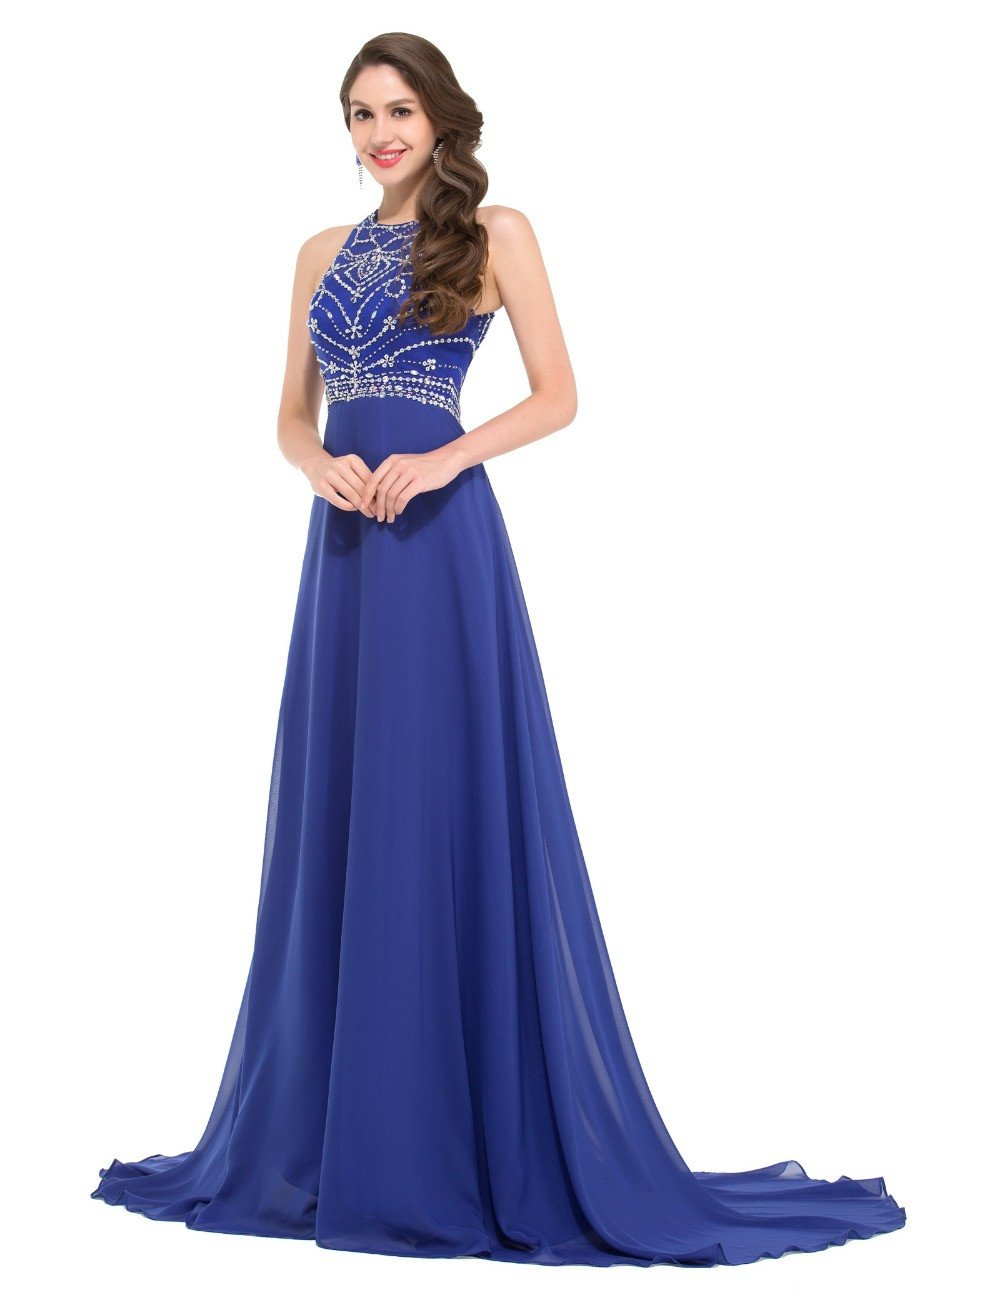 Rhinestone Evening Dresses Long Train Royal Blue Gown Women Formal ...